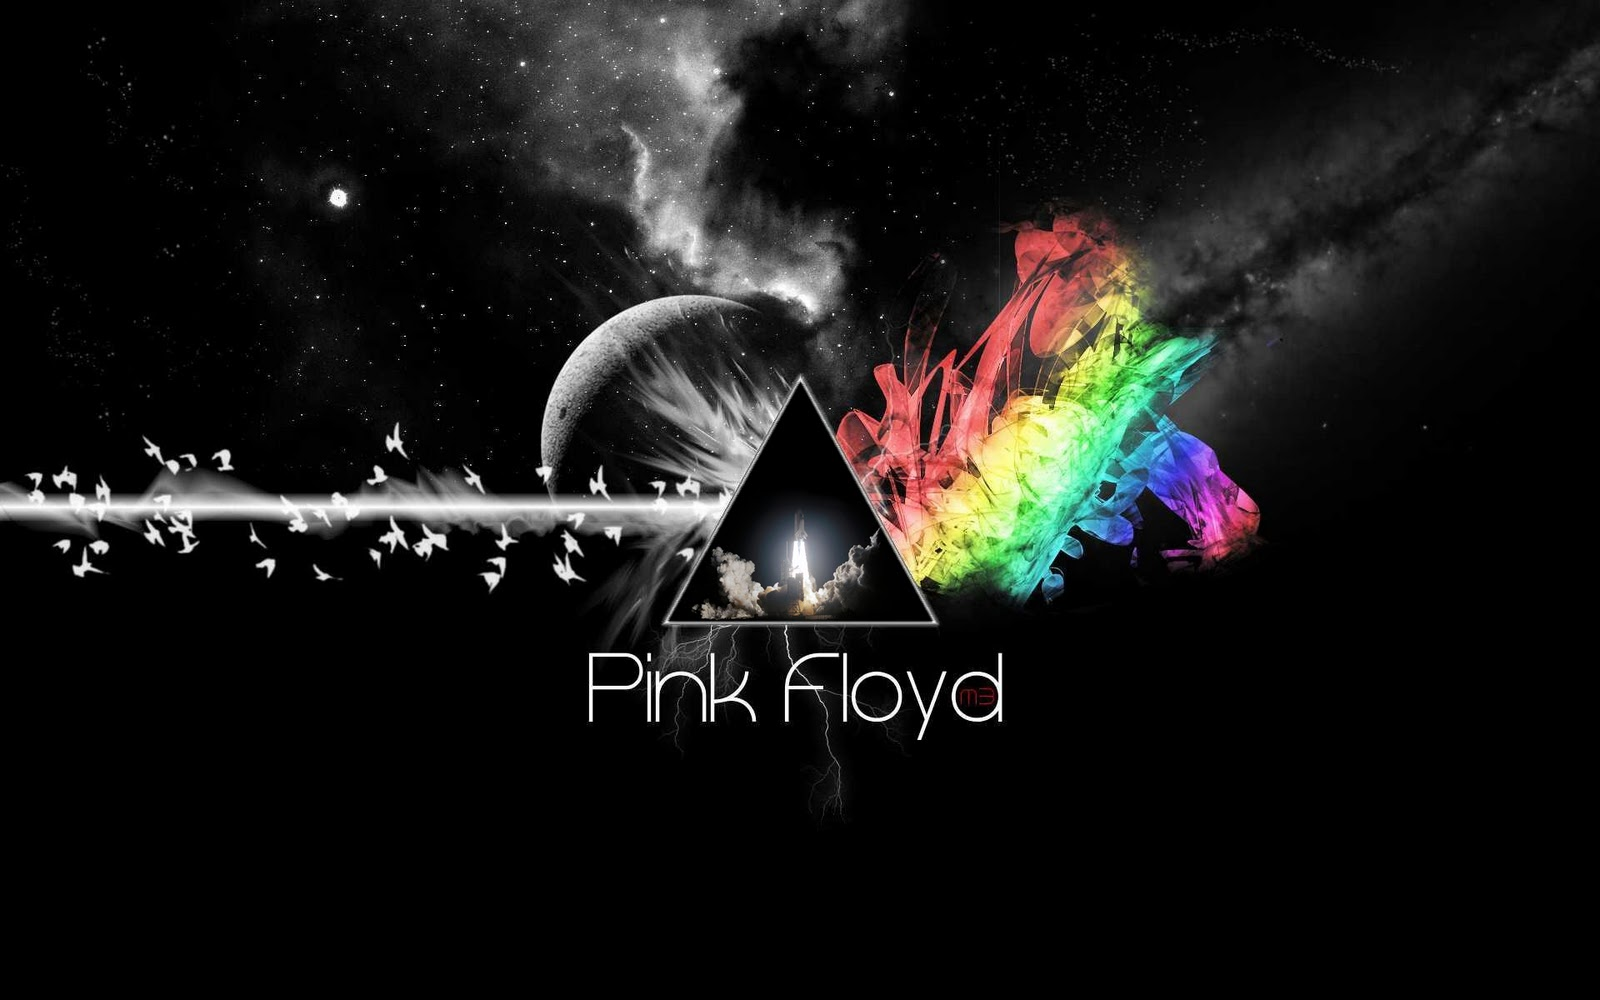 Rock of Ages Pink Floyd   Wish you were here 1600x1000